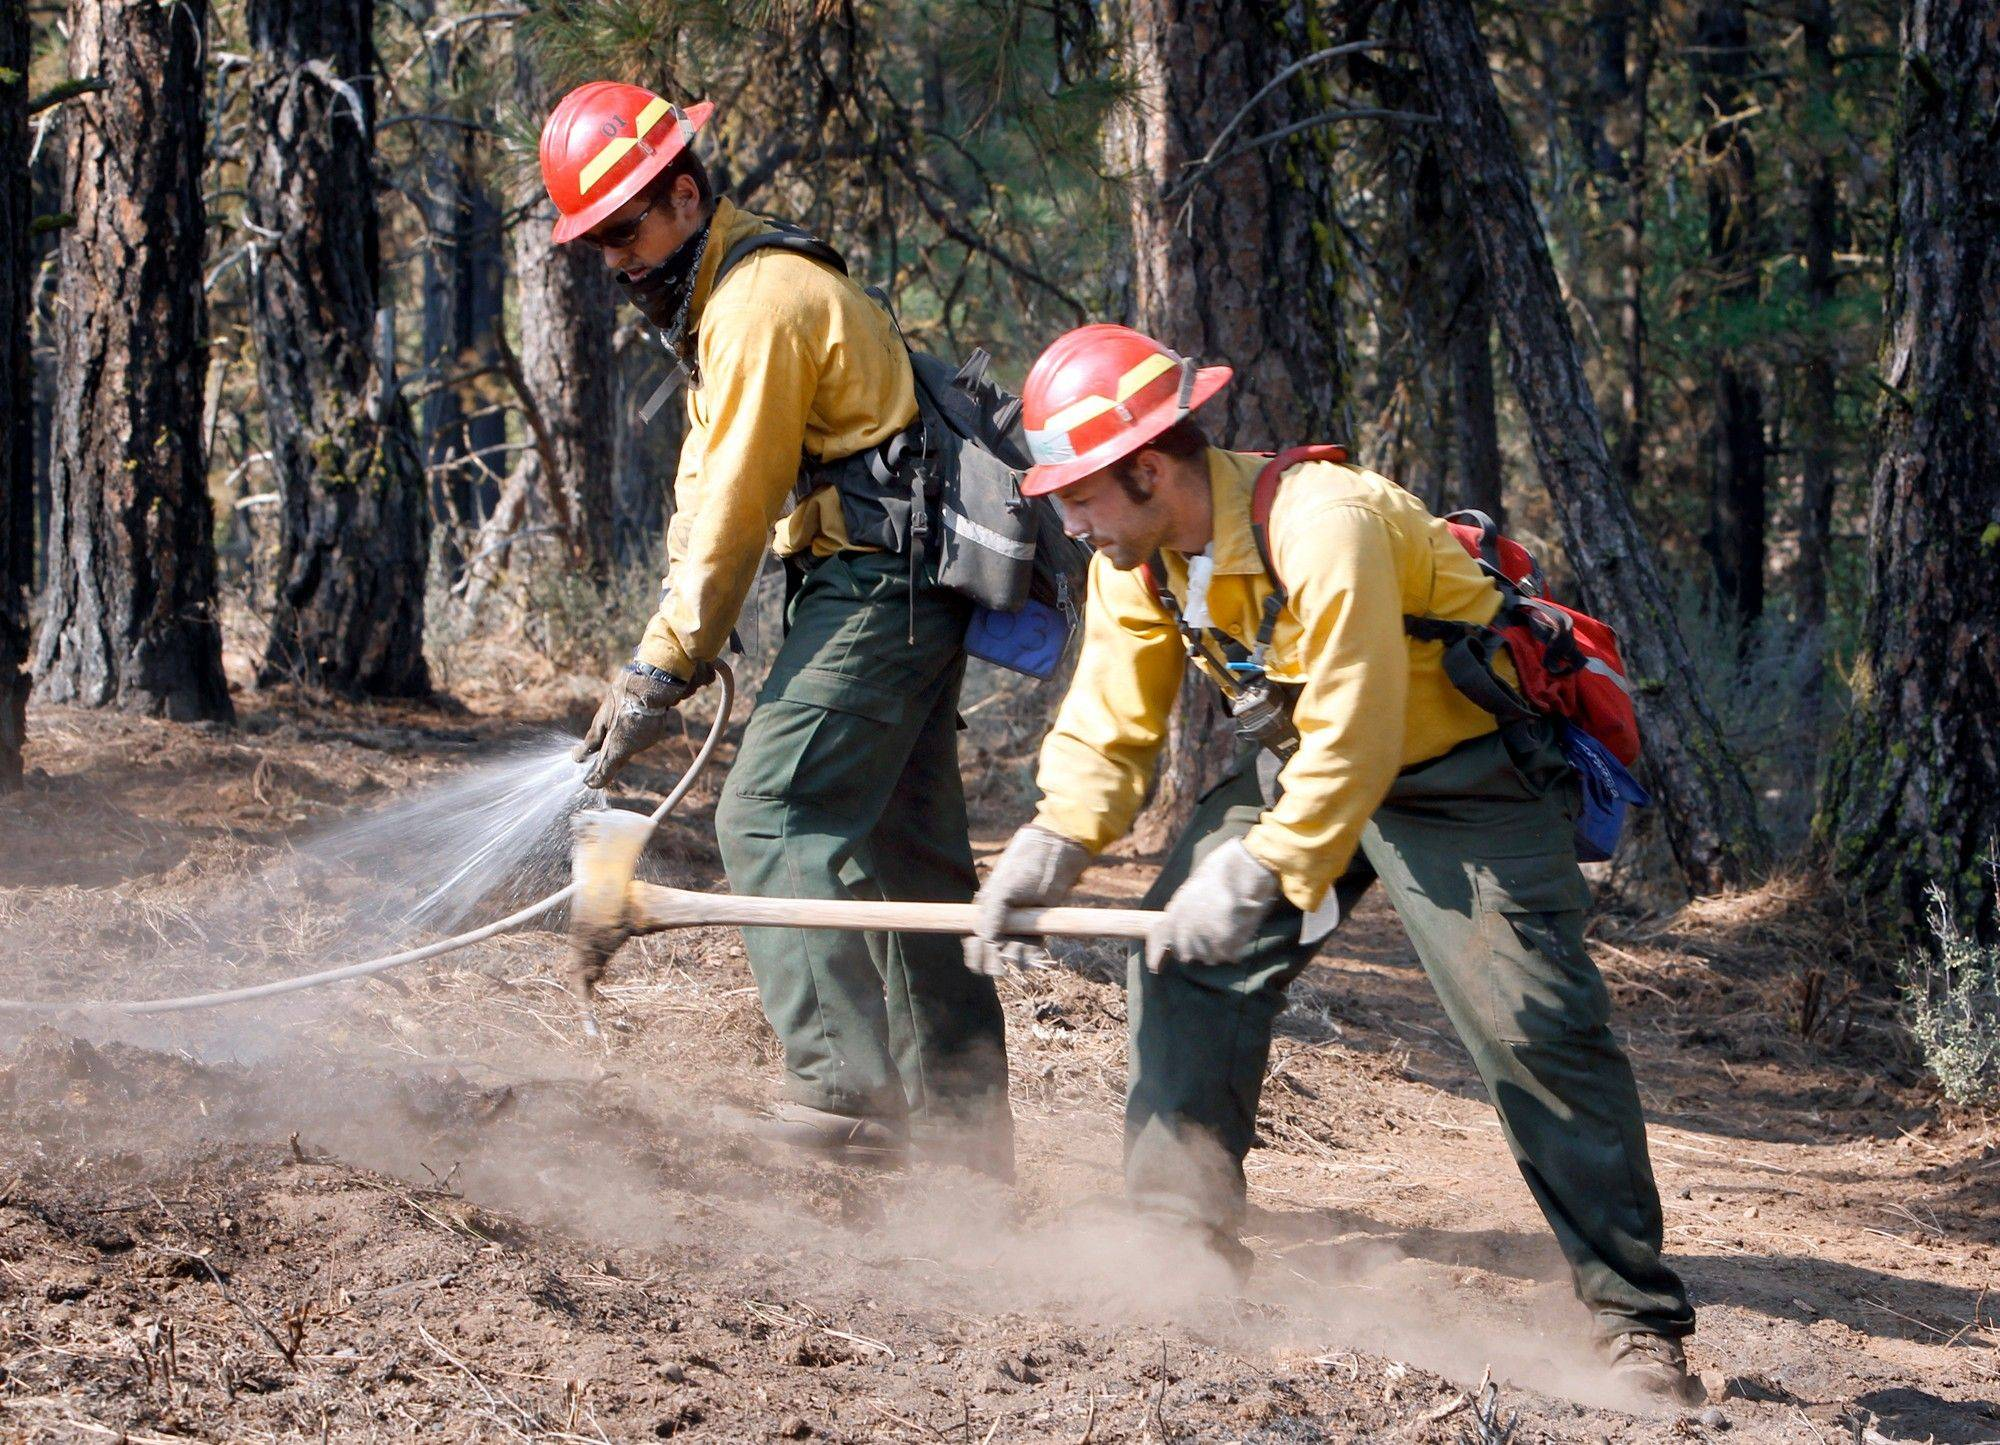 Alex George, left, and Kevin Weed of Glacier Peak Wildfire, Inc., extinguish hot spots along a fire line near Box Canyon Road on the eastern boundary of the Monastery Complex Fire, Saturday, Sept. 10, 2011 in Yakima, Wash.